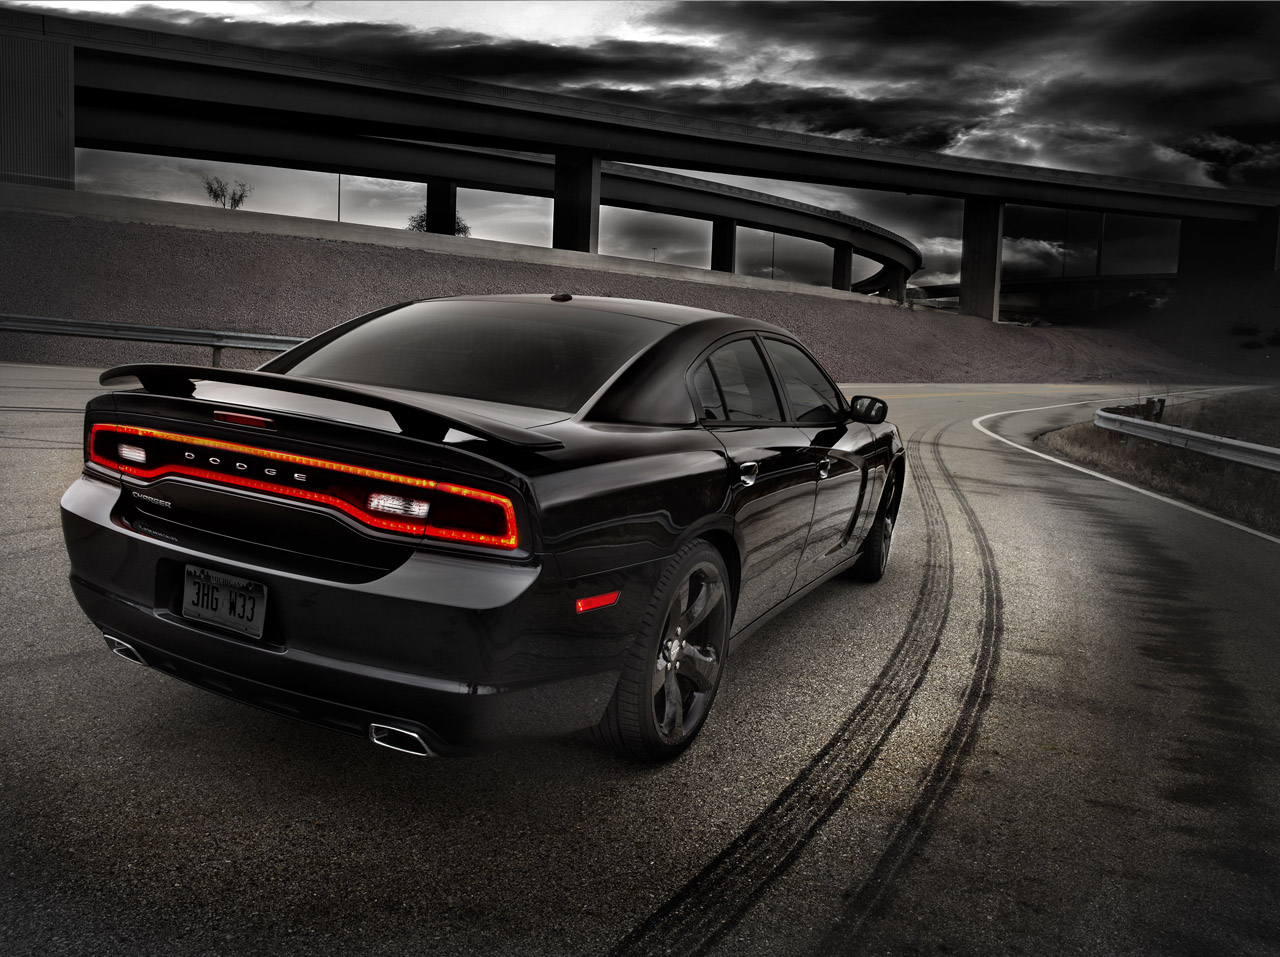 2012 Dodge Charger #14